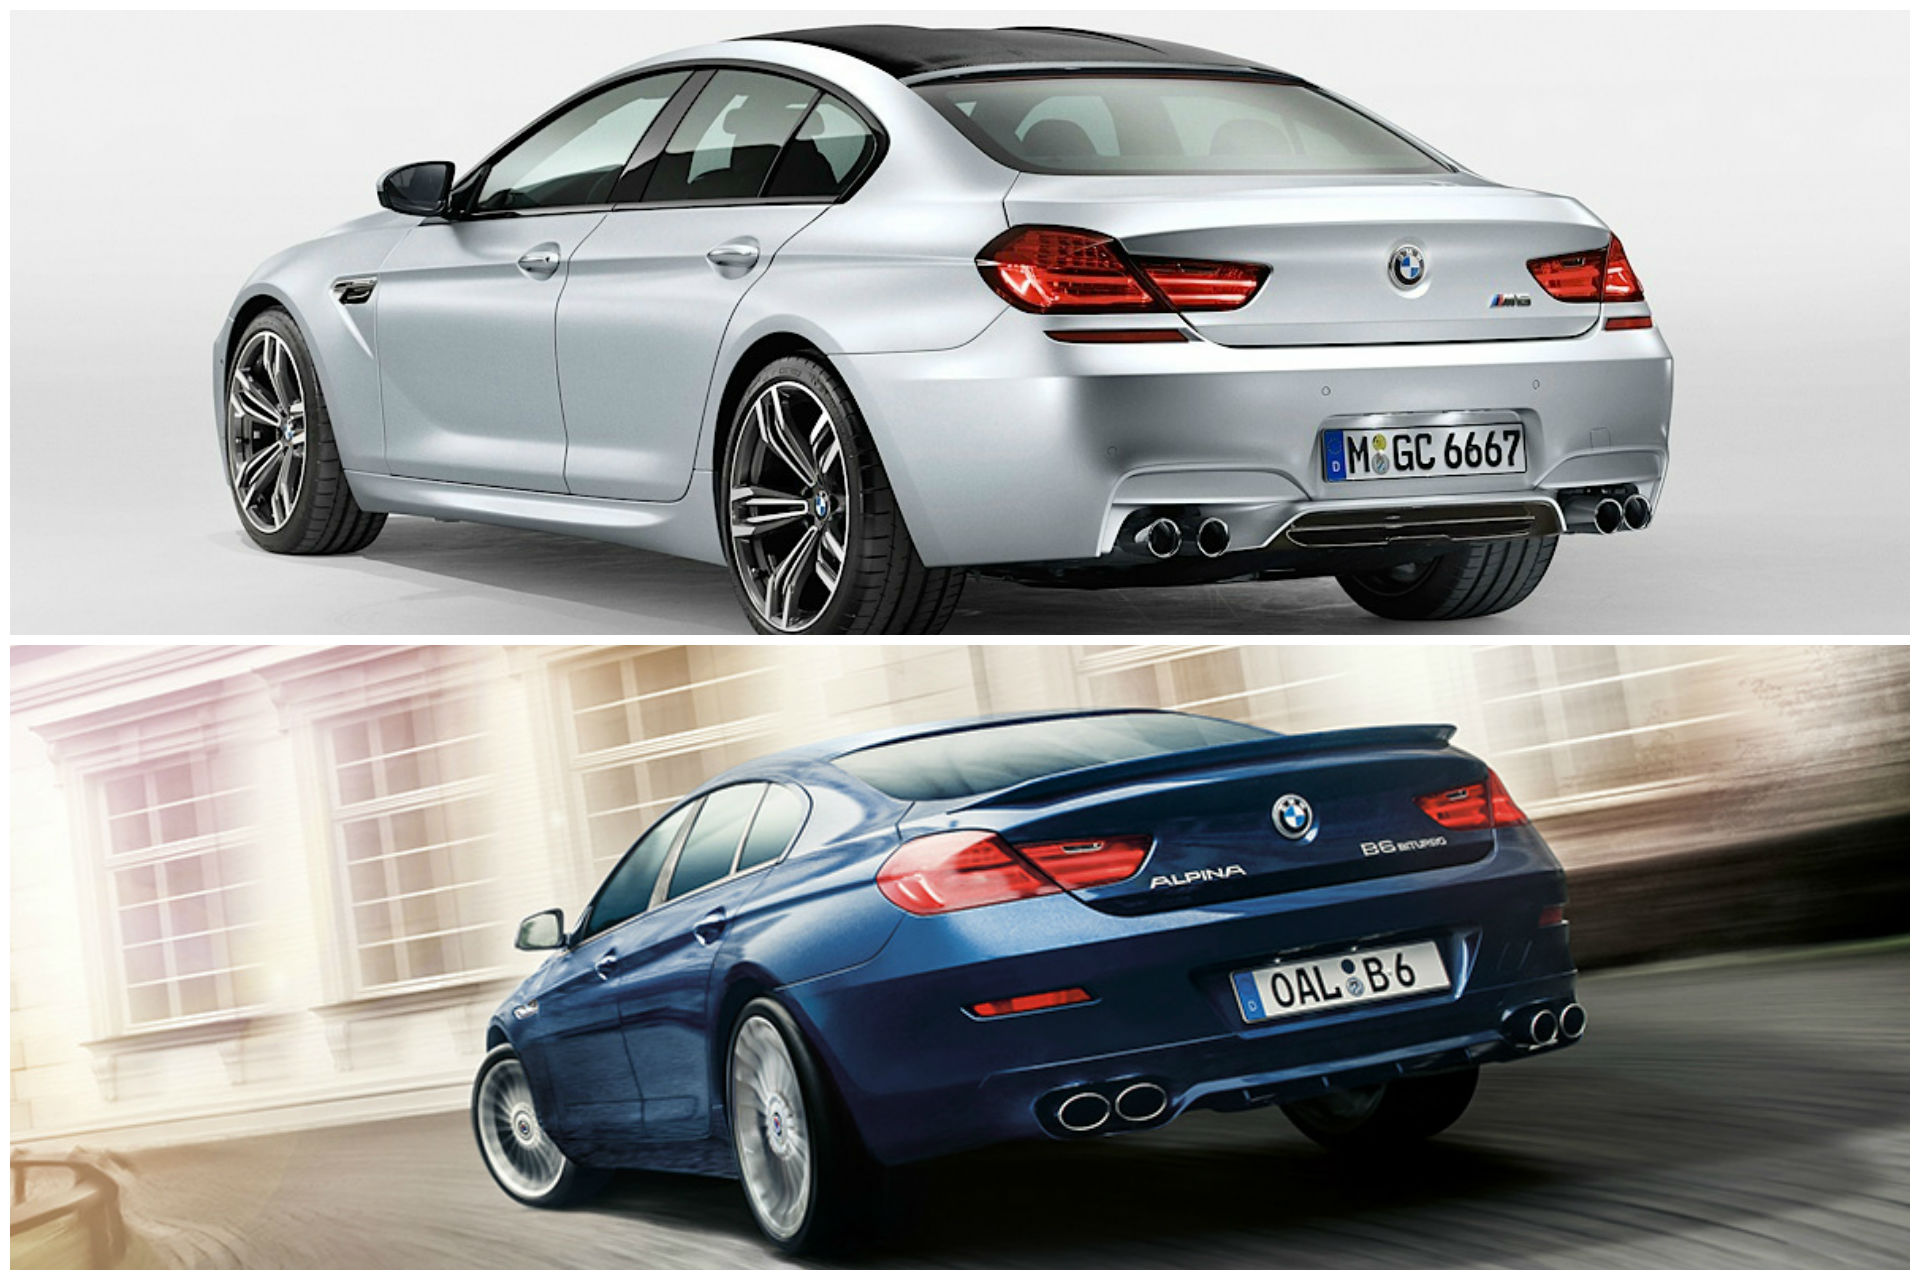 BMW Alpina B6 >> BMW M6 Gran Coupe vs Alpina B6 Gran Coupe: What Makes them ...